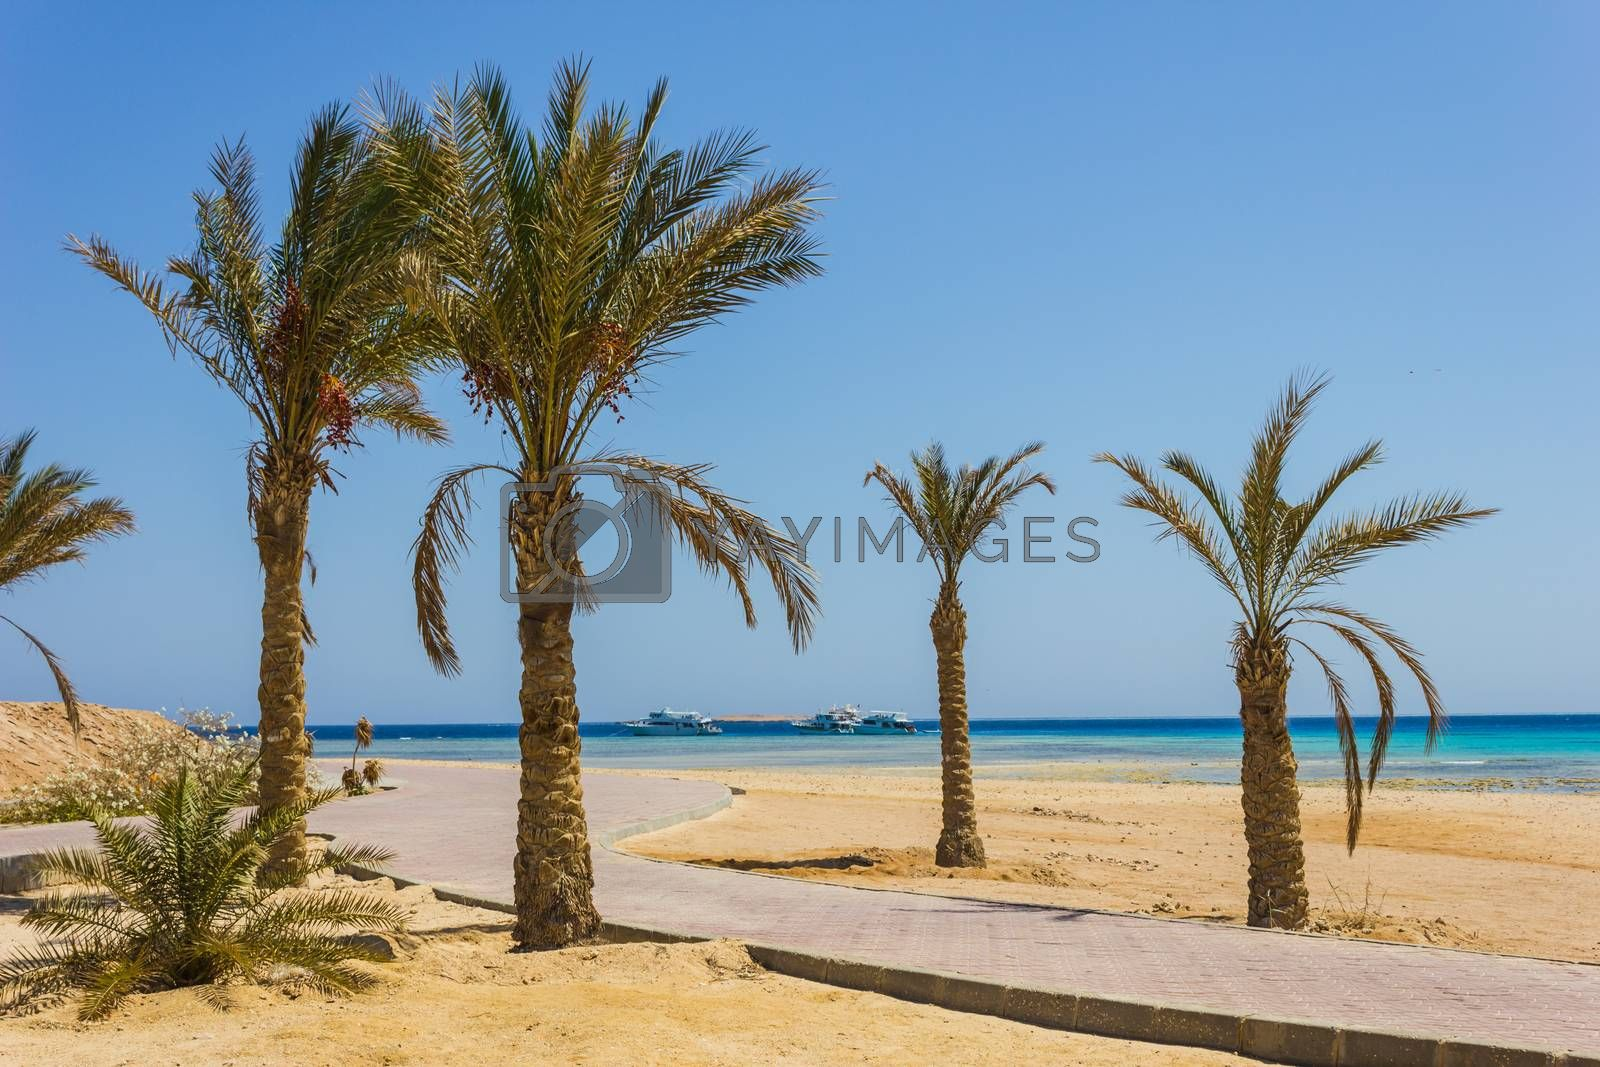 Royalty free image of Palm trees on the beach by oleg_zhukov